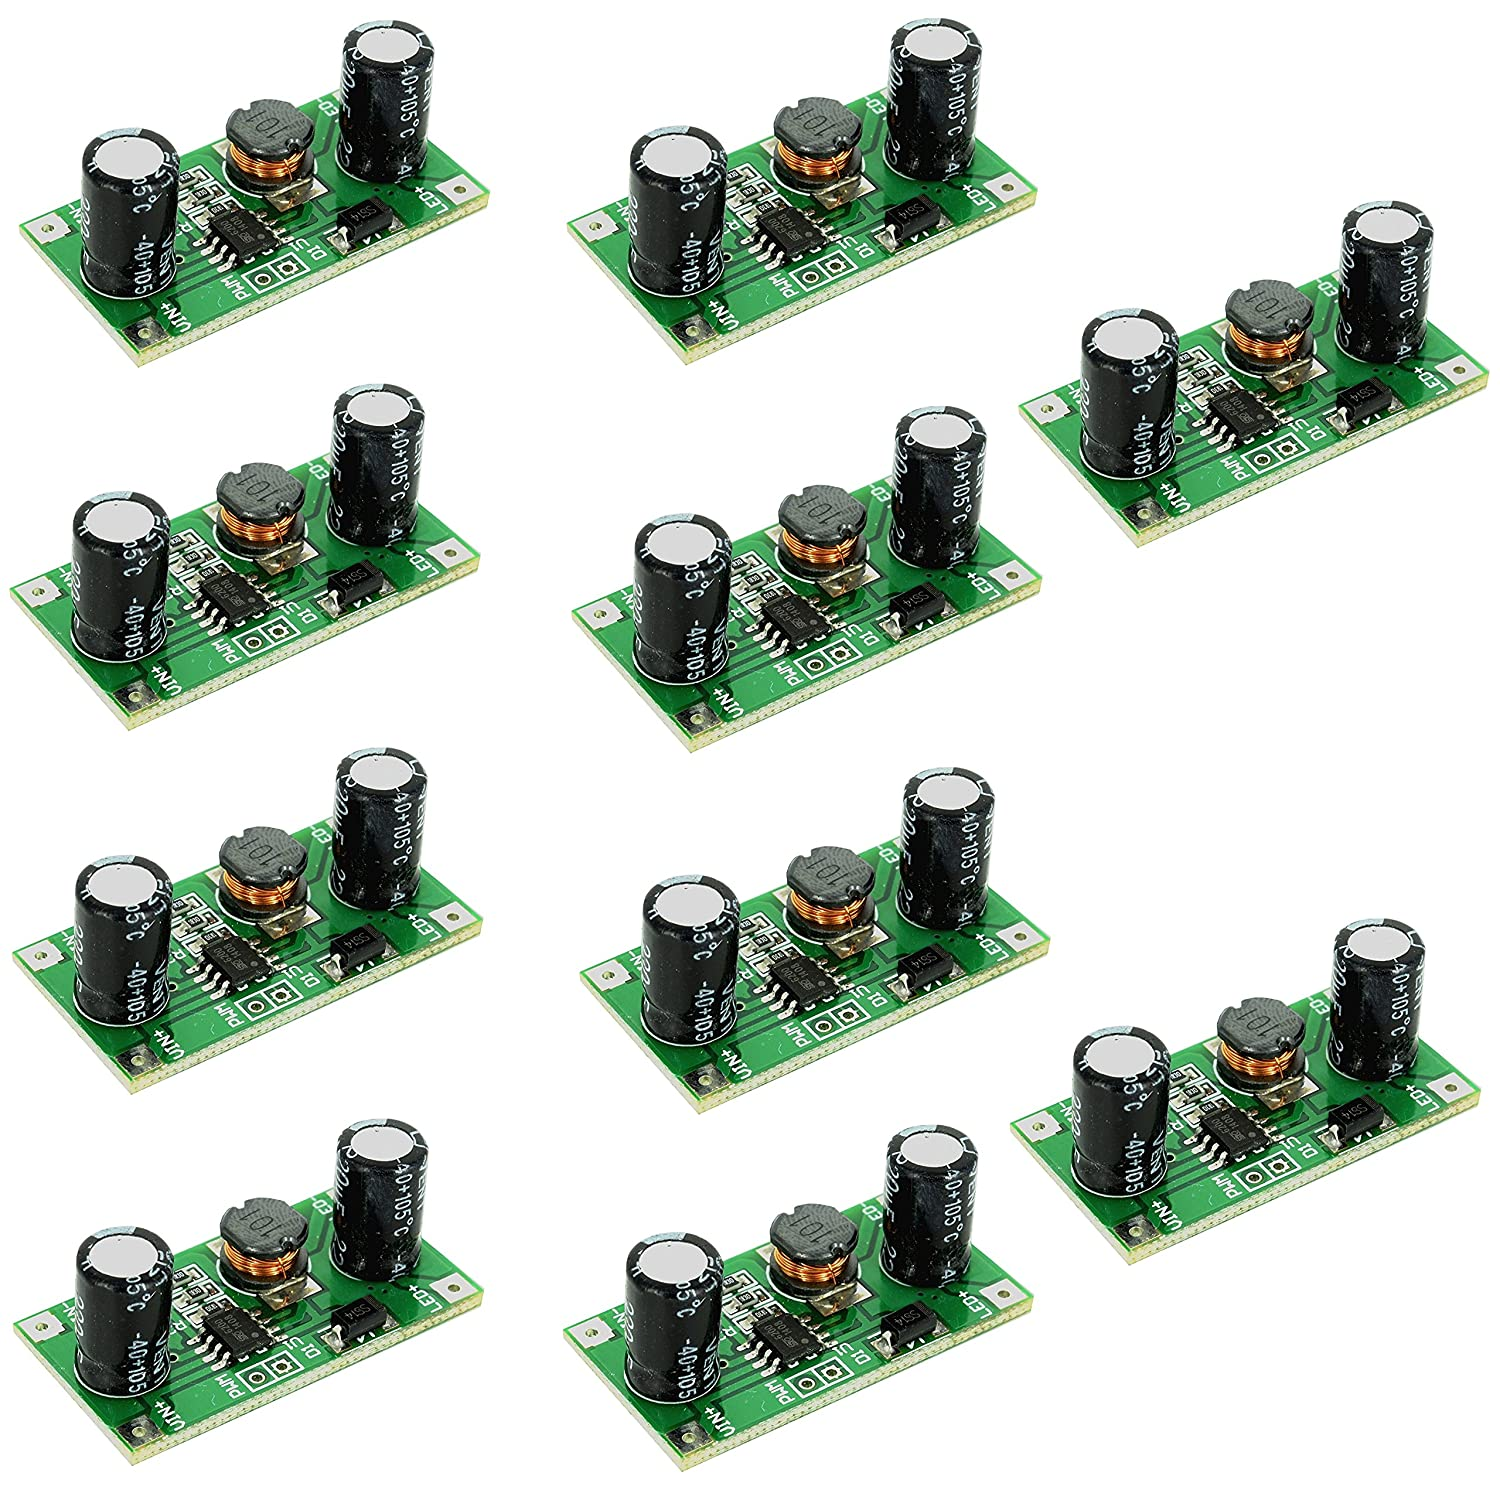 Optimus Electric 10pcs 1w Led Driver Module Pwm Light Rgb For High Power 350ma Leds V3 Using Pic12f629 Dimmer 5v To 35v Lighting Control From Electronics